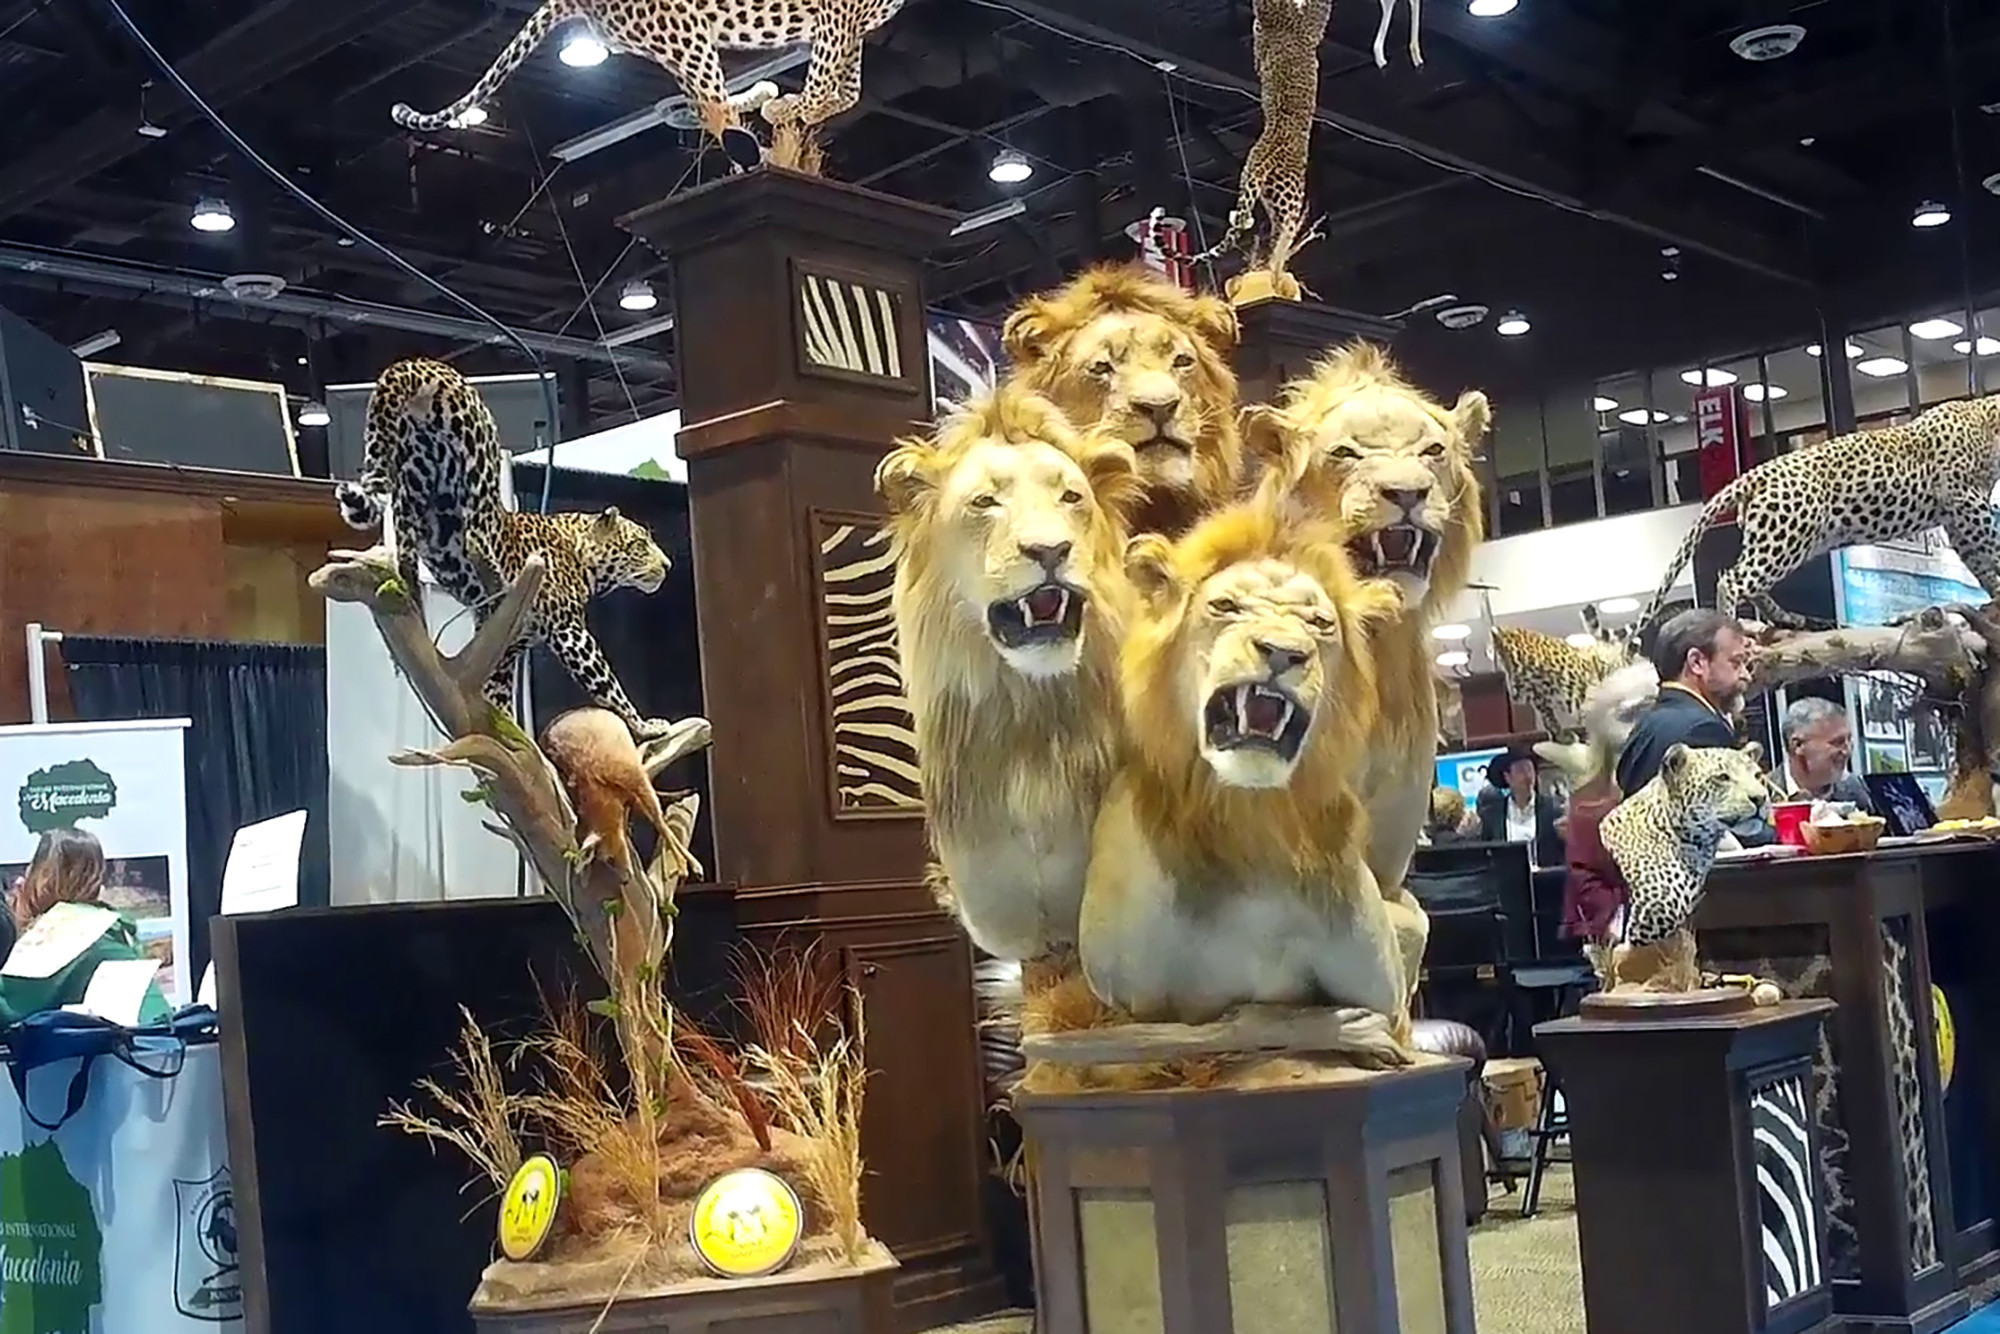 Canned lion hunts and $1,300 giraffe-skin boots all up for sale at trophy-hunting convention